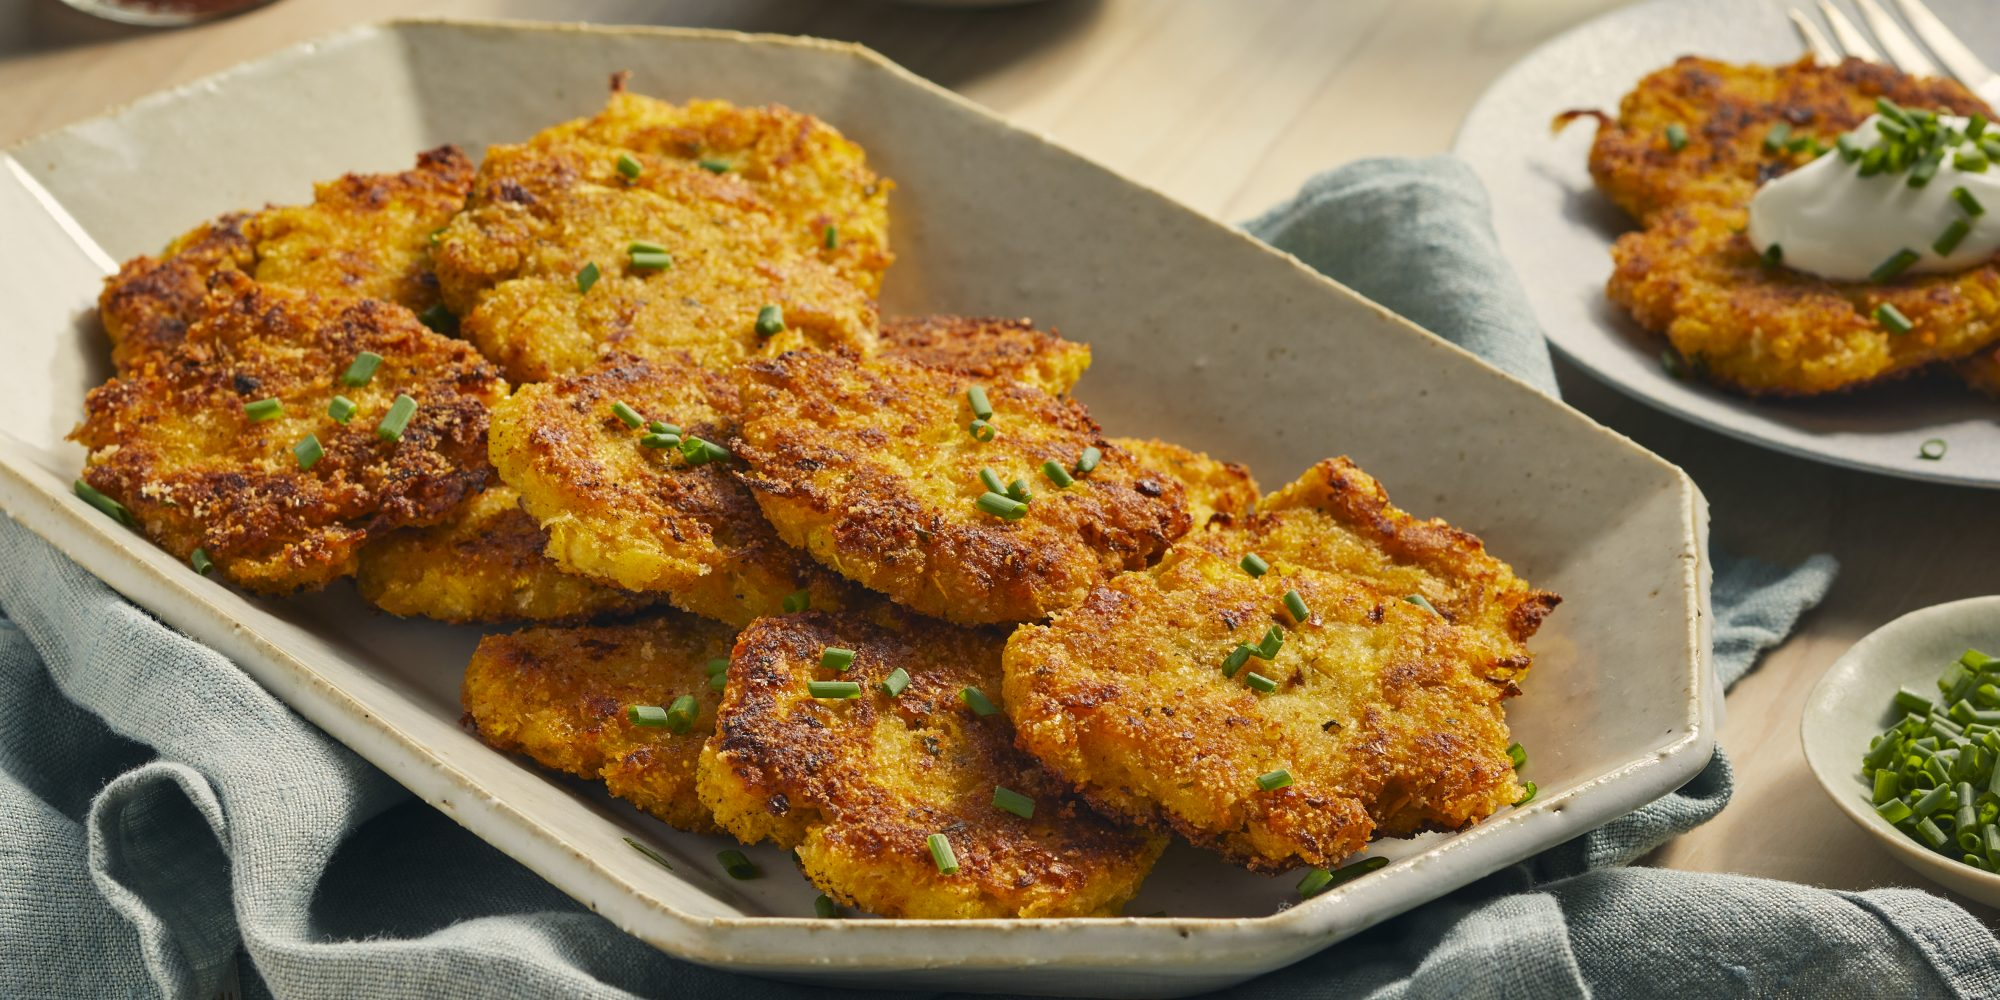 family style serving of yellow squash patties garnished with fresh chives